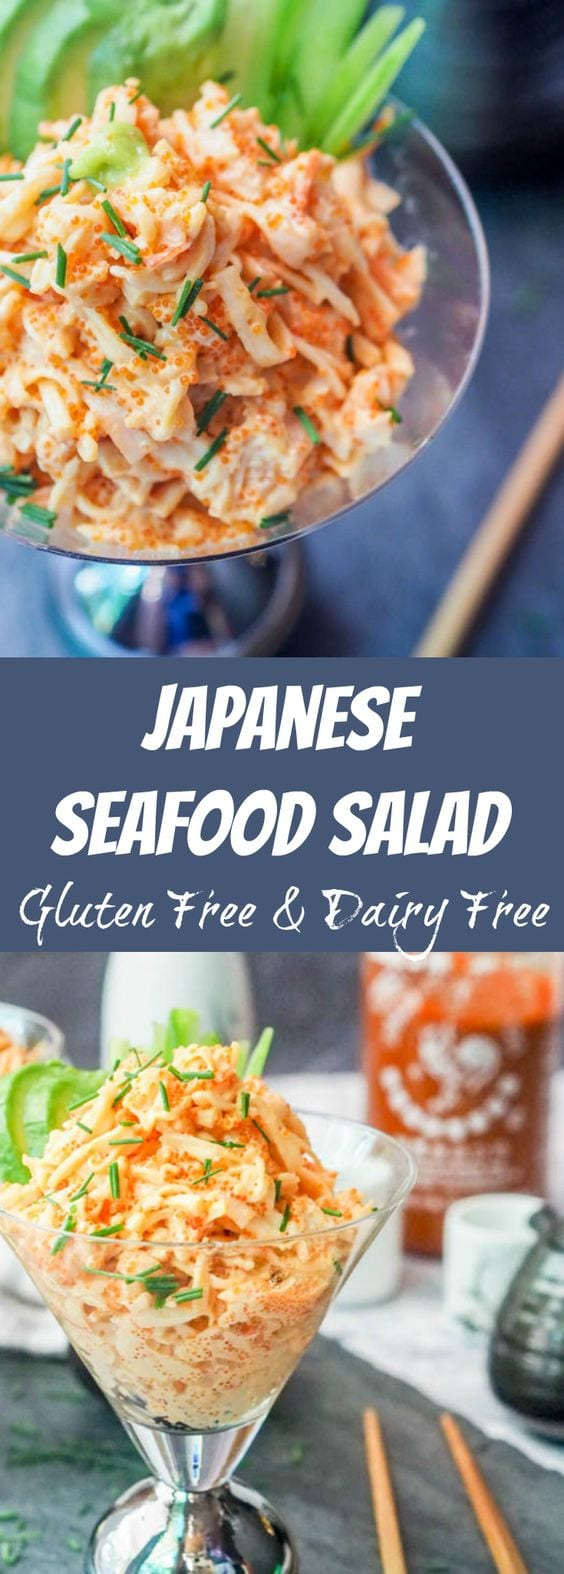 Seafood salad takes on an Asian flair and is made with crab, shrimp, tobiko and mayo with some added spice as well. Gluten-Free and Dairy-Free. A perfect appetizer to an Japanese or Asian themed meal. #dinner #salad #seafood #asian